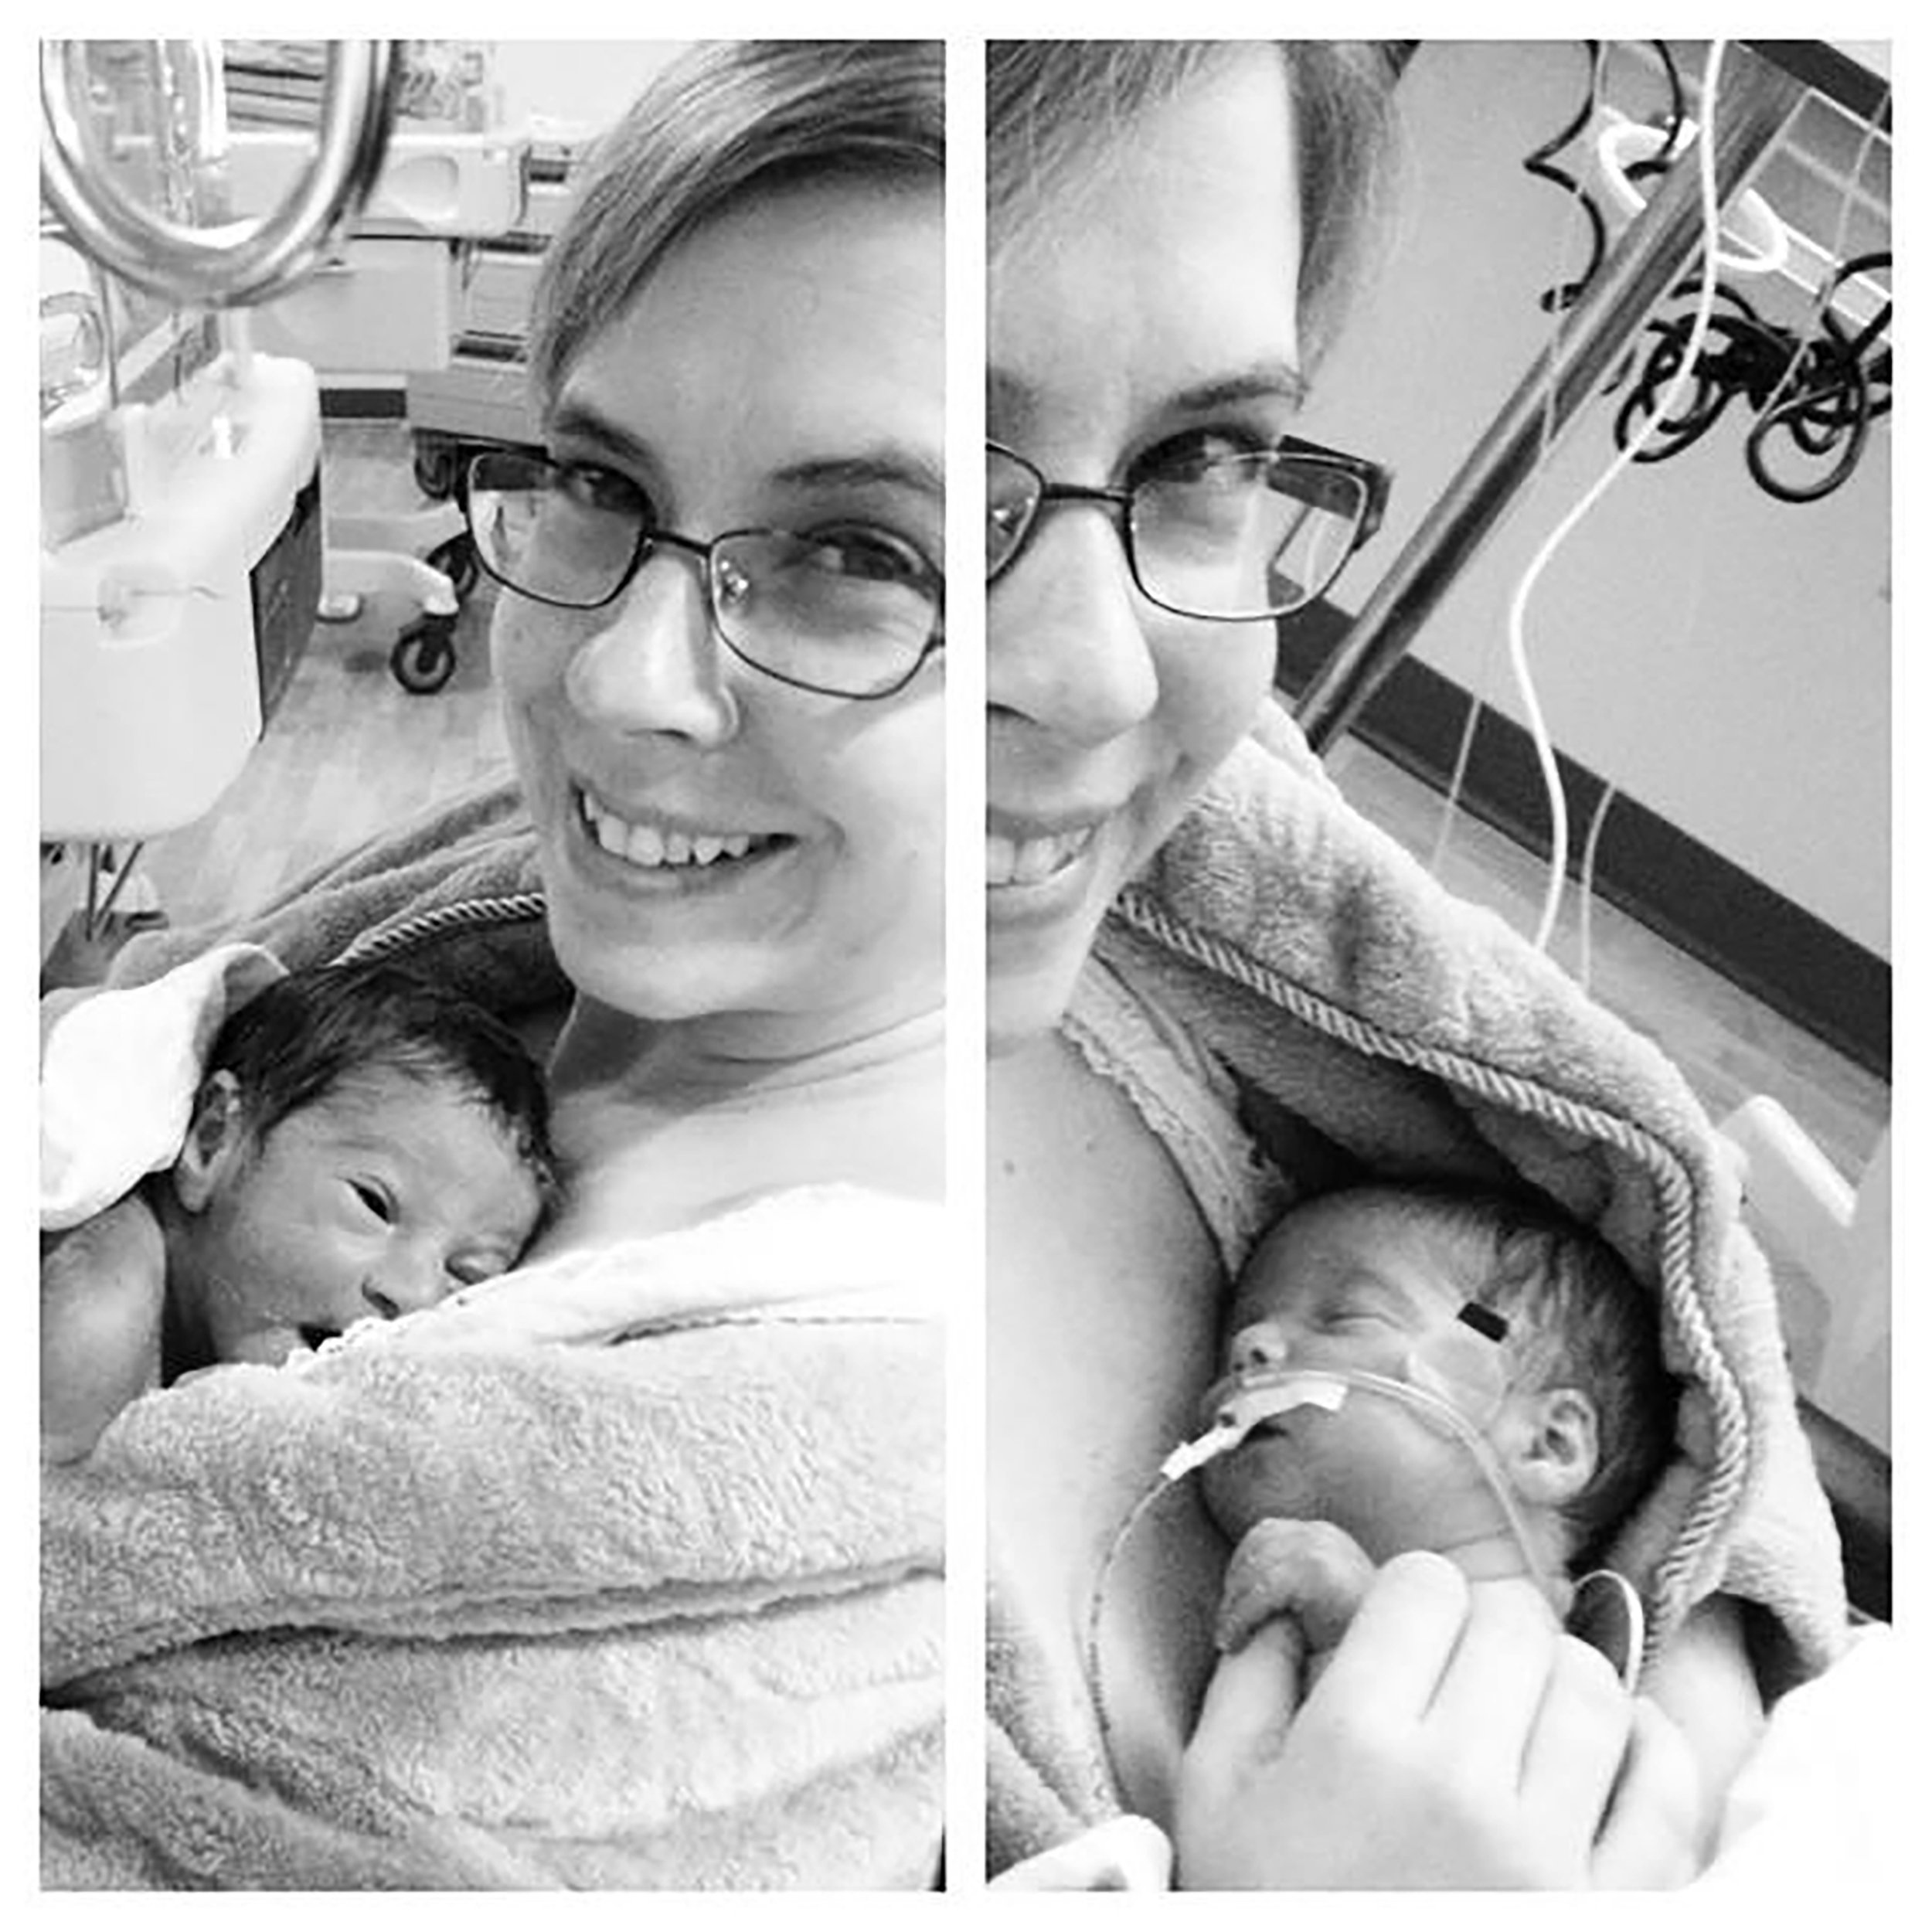 JENNY RUUD HOLDING TWINS LUCAS AND ELIJAH FOR THE FIRST TIME IN THE NICU THE DAY AFTER THEY WERE BORN.